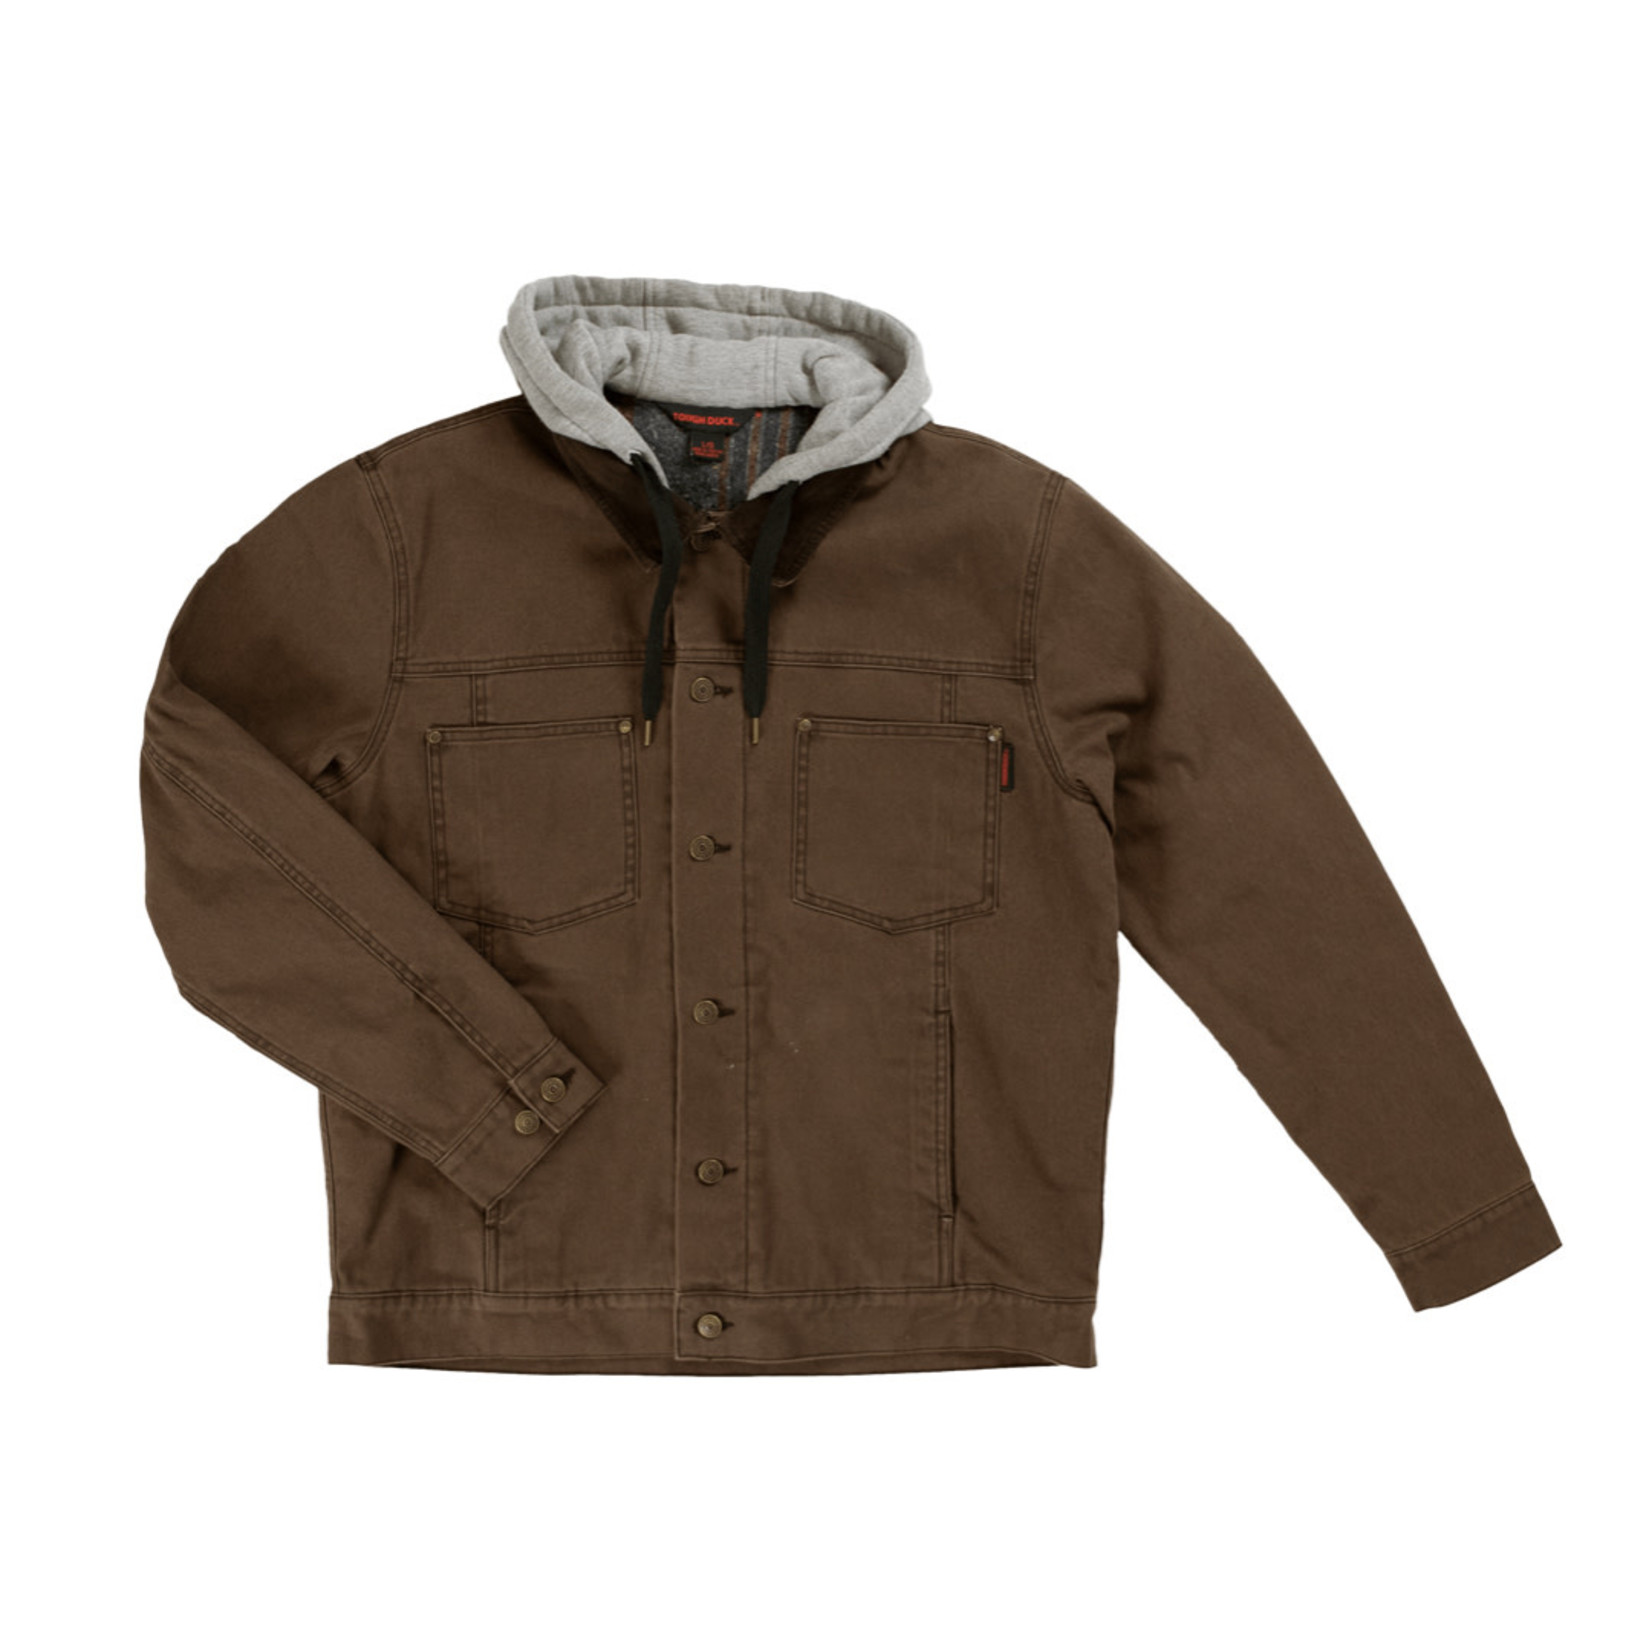 Tough Duck Tough Duck Washed Duck Button Down Blanket Lined Hooded Jacket WJ111 Chestnut